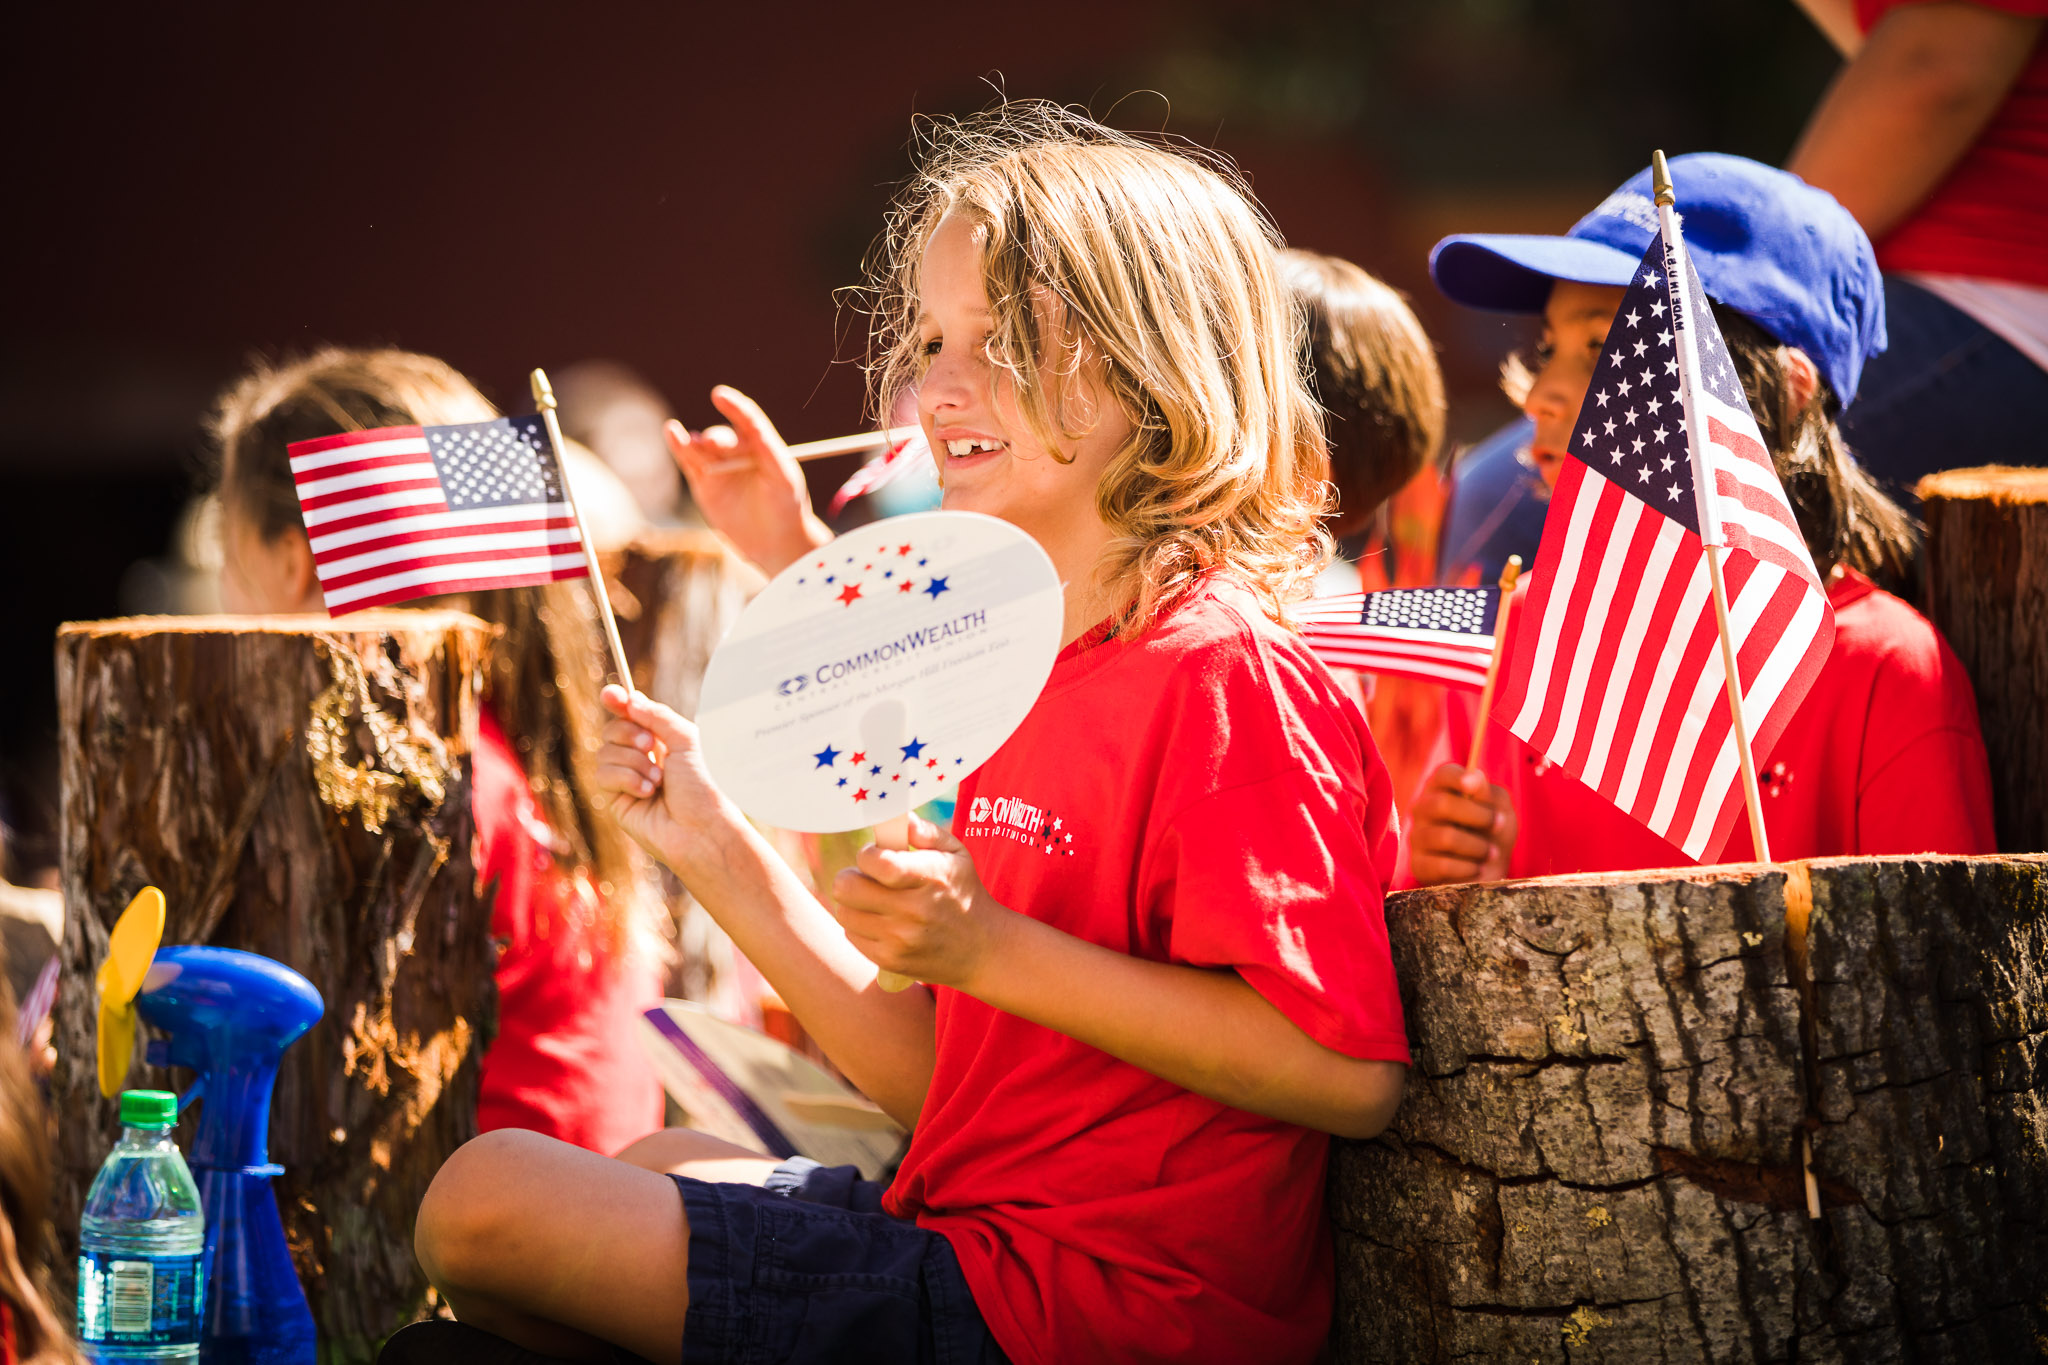 Archer_Inspired_Photography_Morgan_Hill_California_4th_of_july_parade-60.jpg